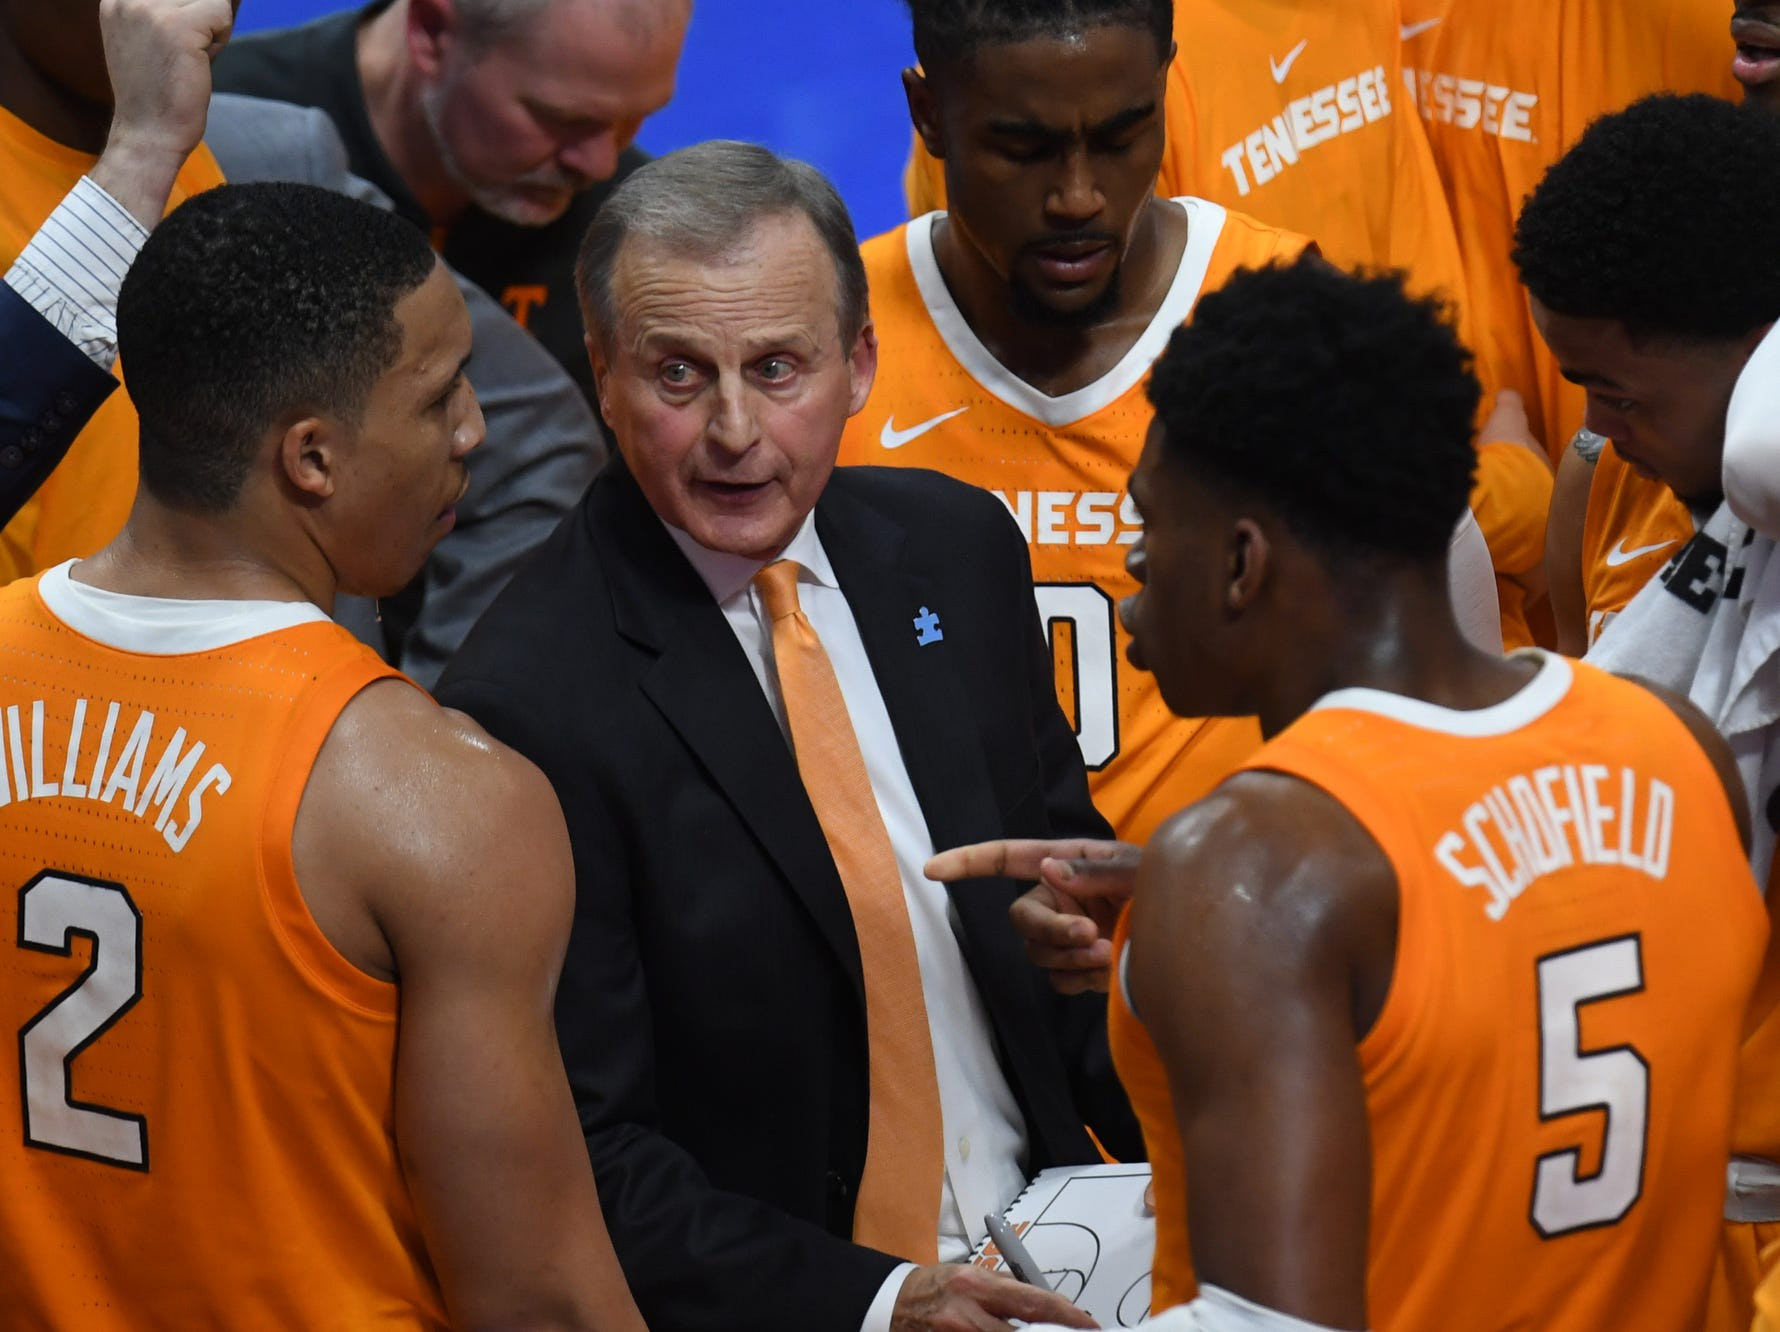 UT head coach Rick Barnes huddles with his team during the University of Kentucky mens basketball game against Tennessee at Rupp Arena in Lexington, Kentucky on Saturday, February 16, 2019.